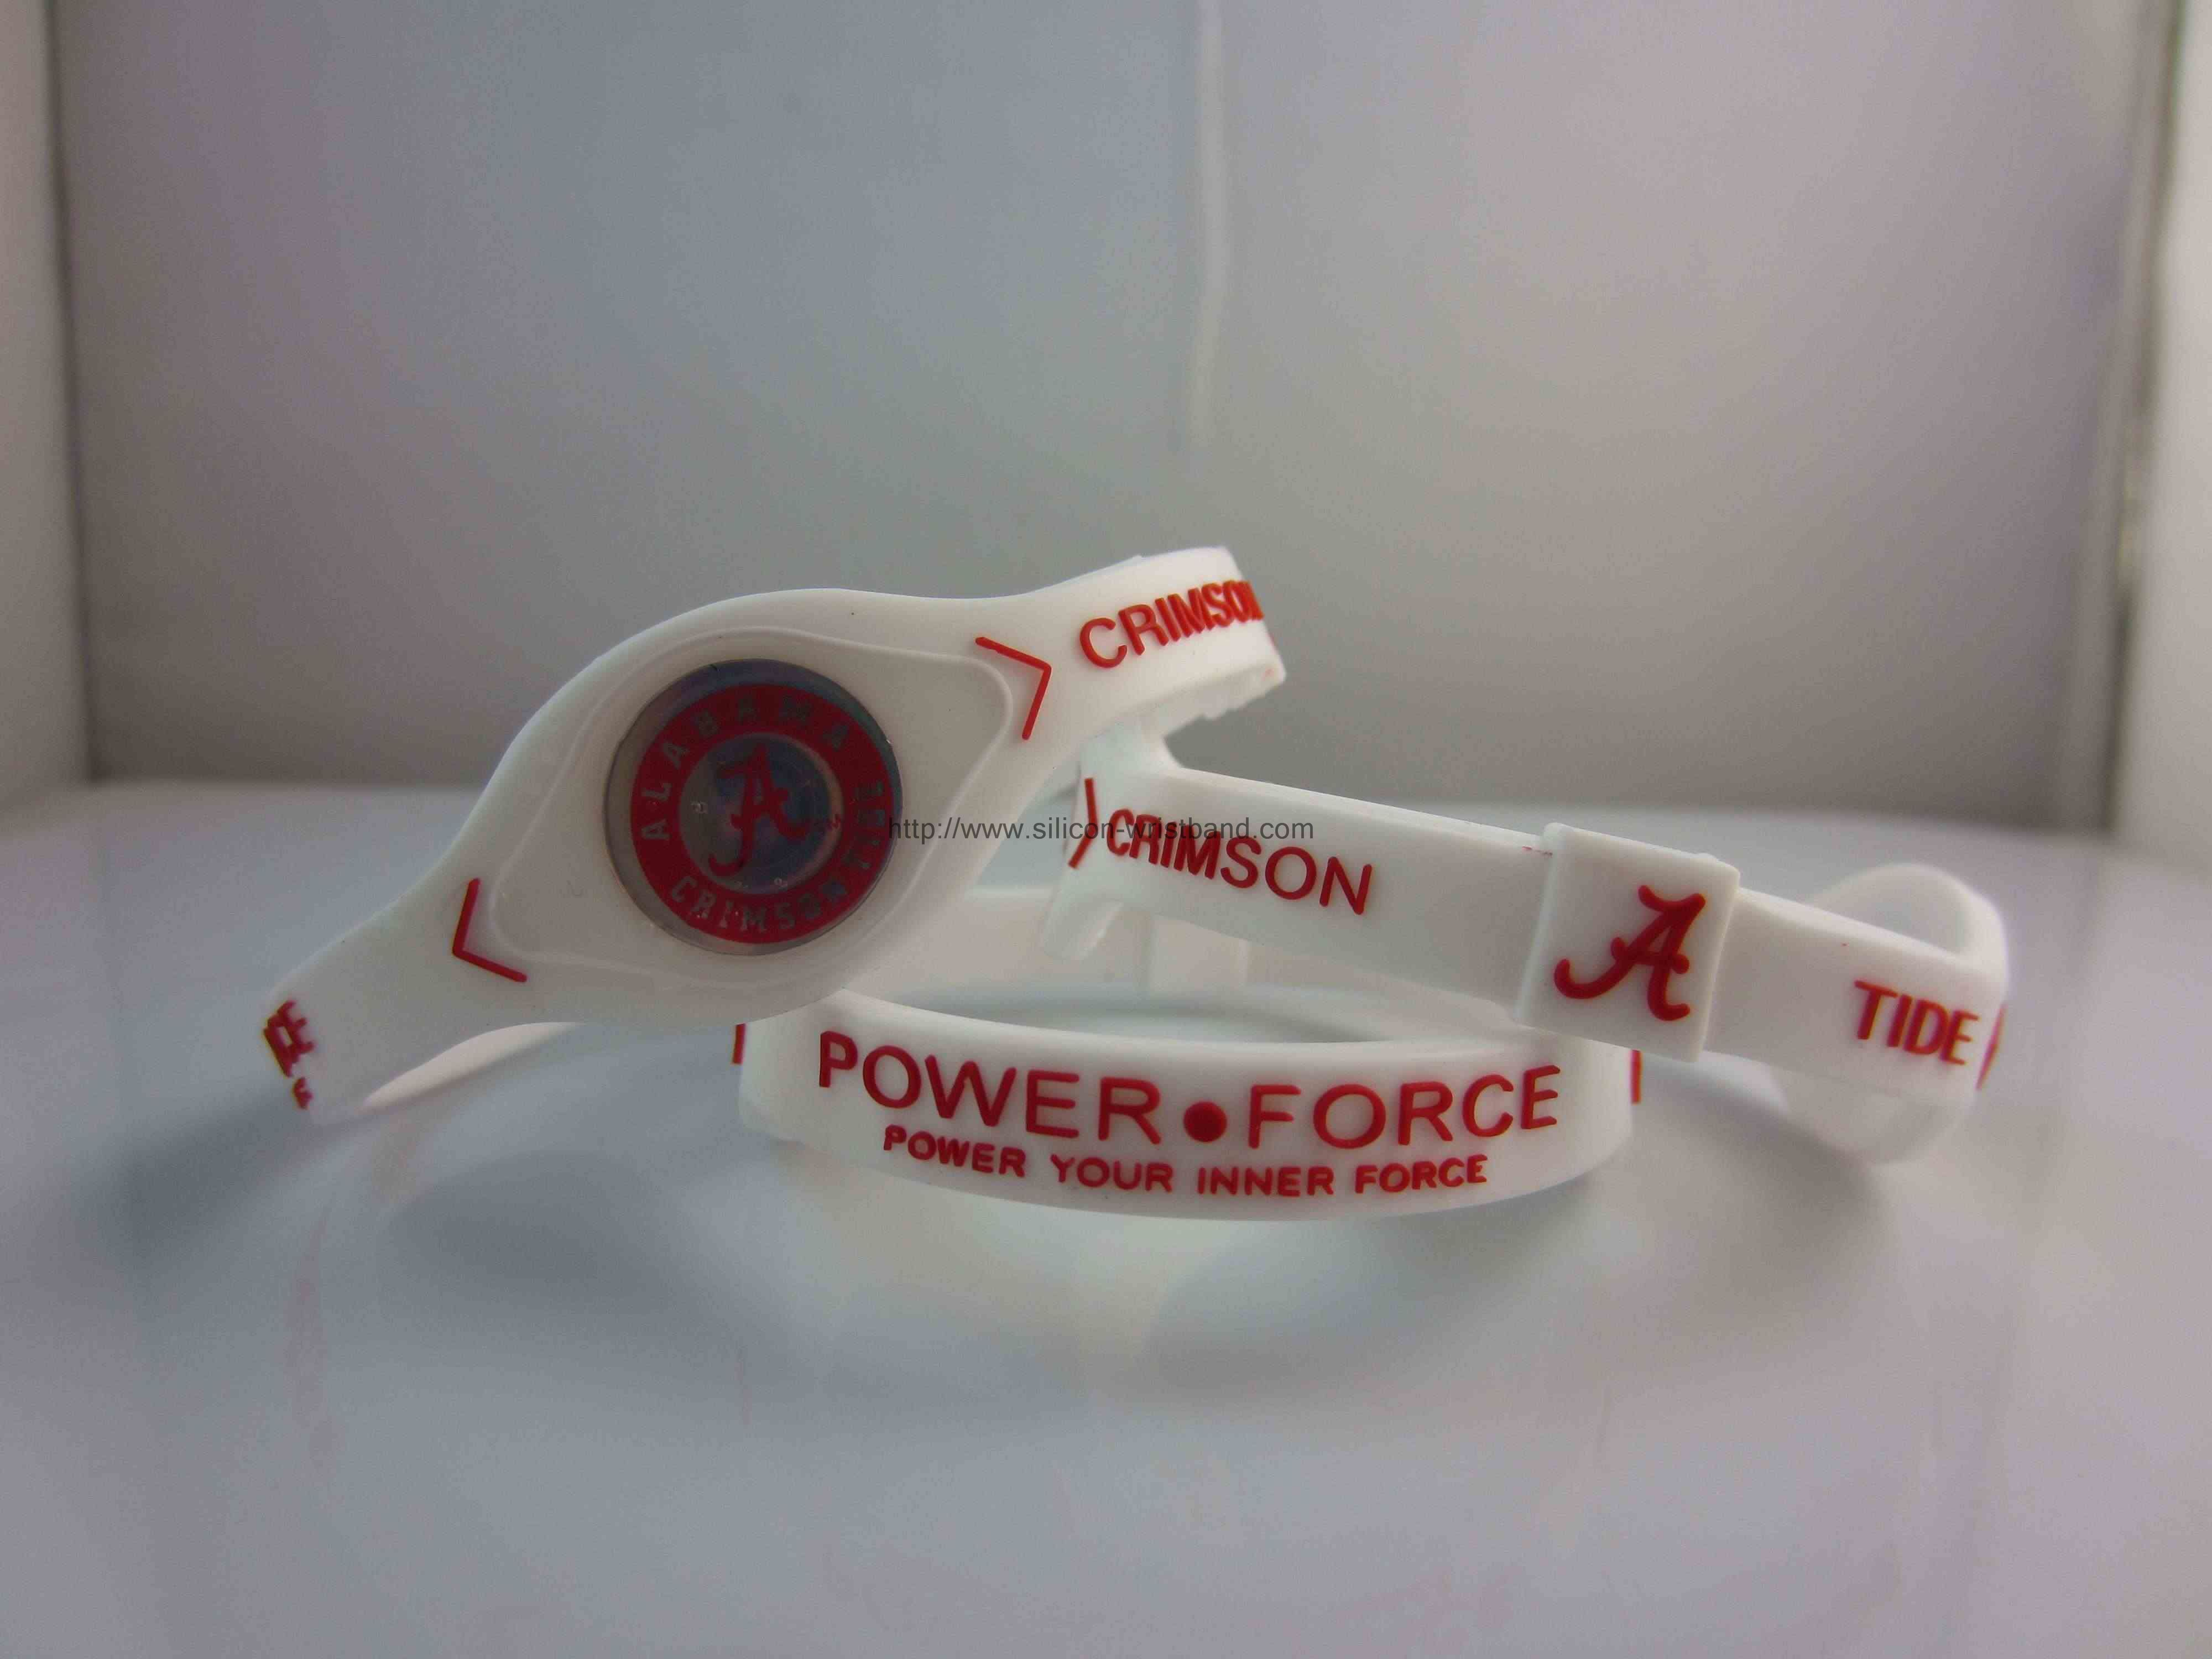 Where can I make printing silicone wristbands